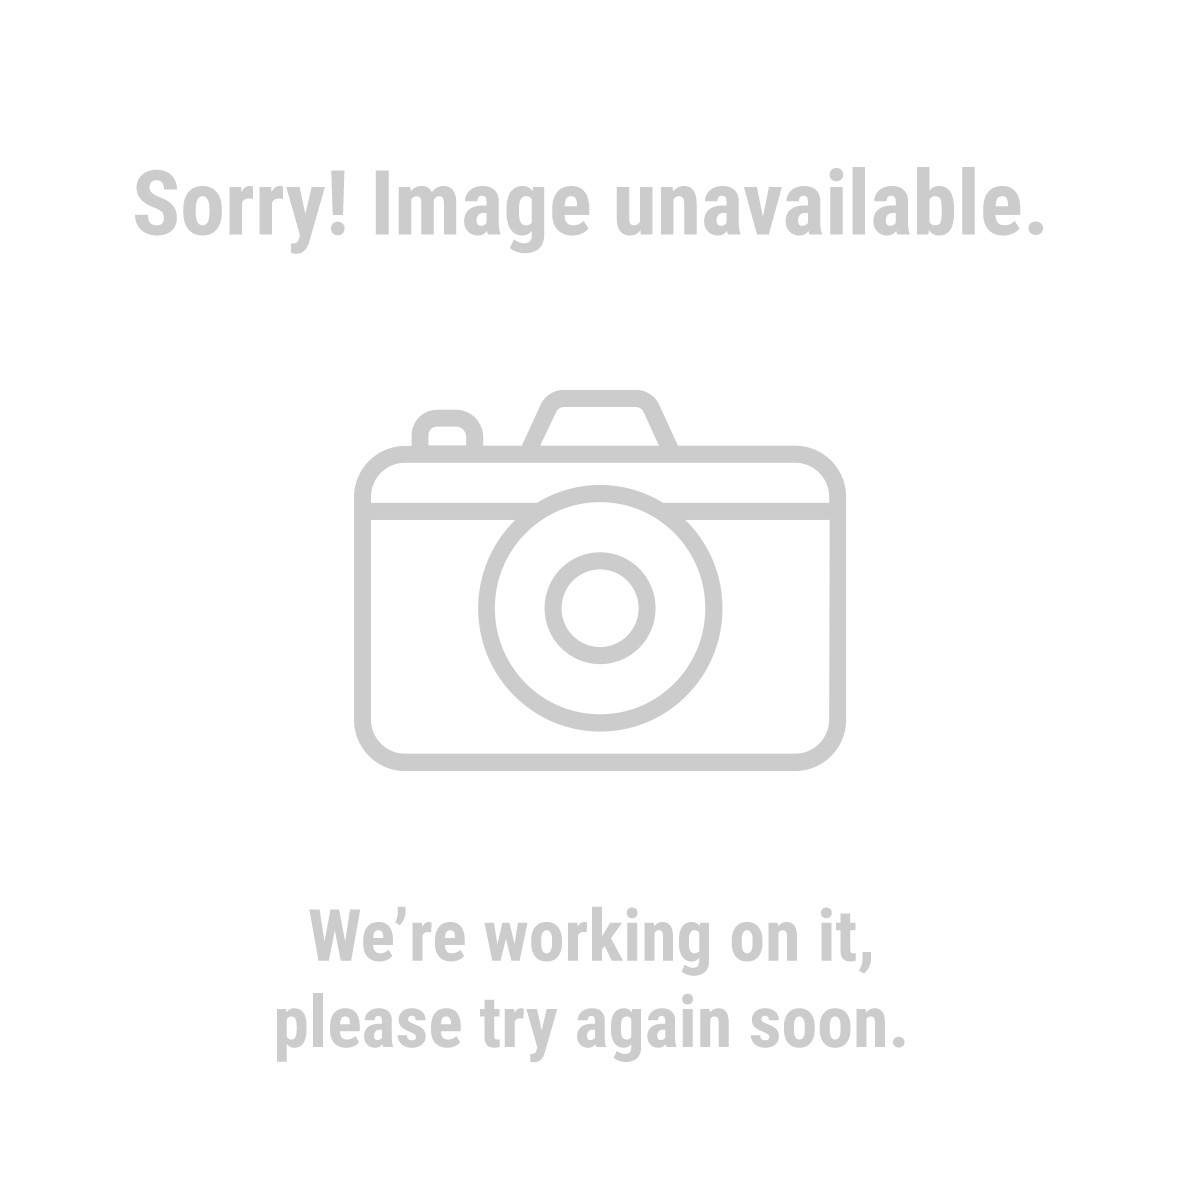 Pittsburgh Automotive 69285 12 Volt, 150 PSI High Volume Air Compressor